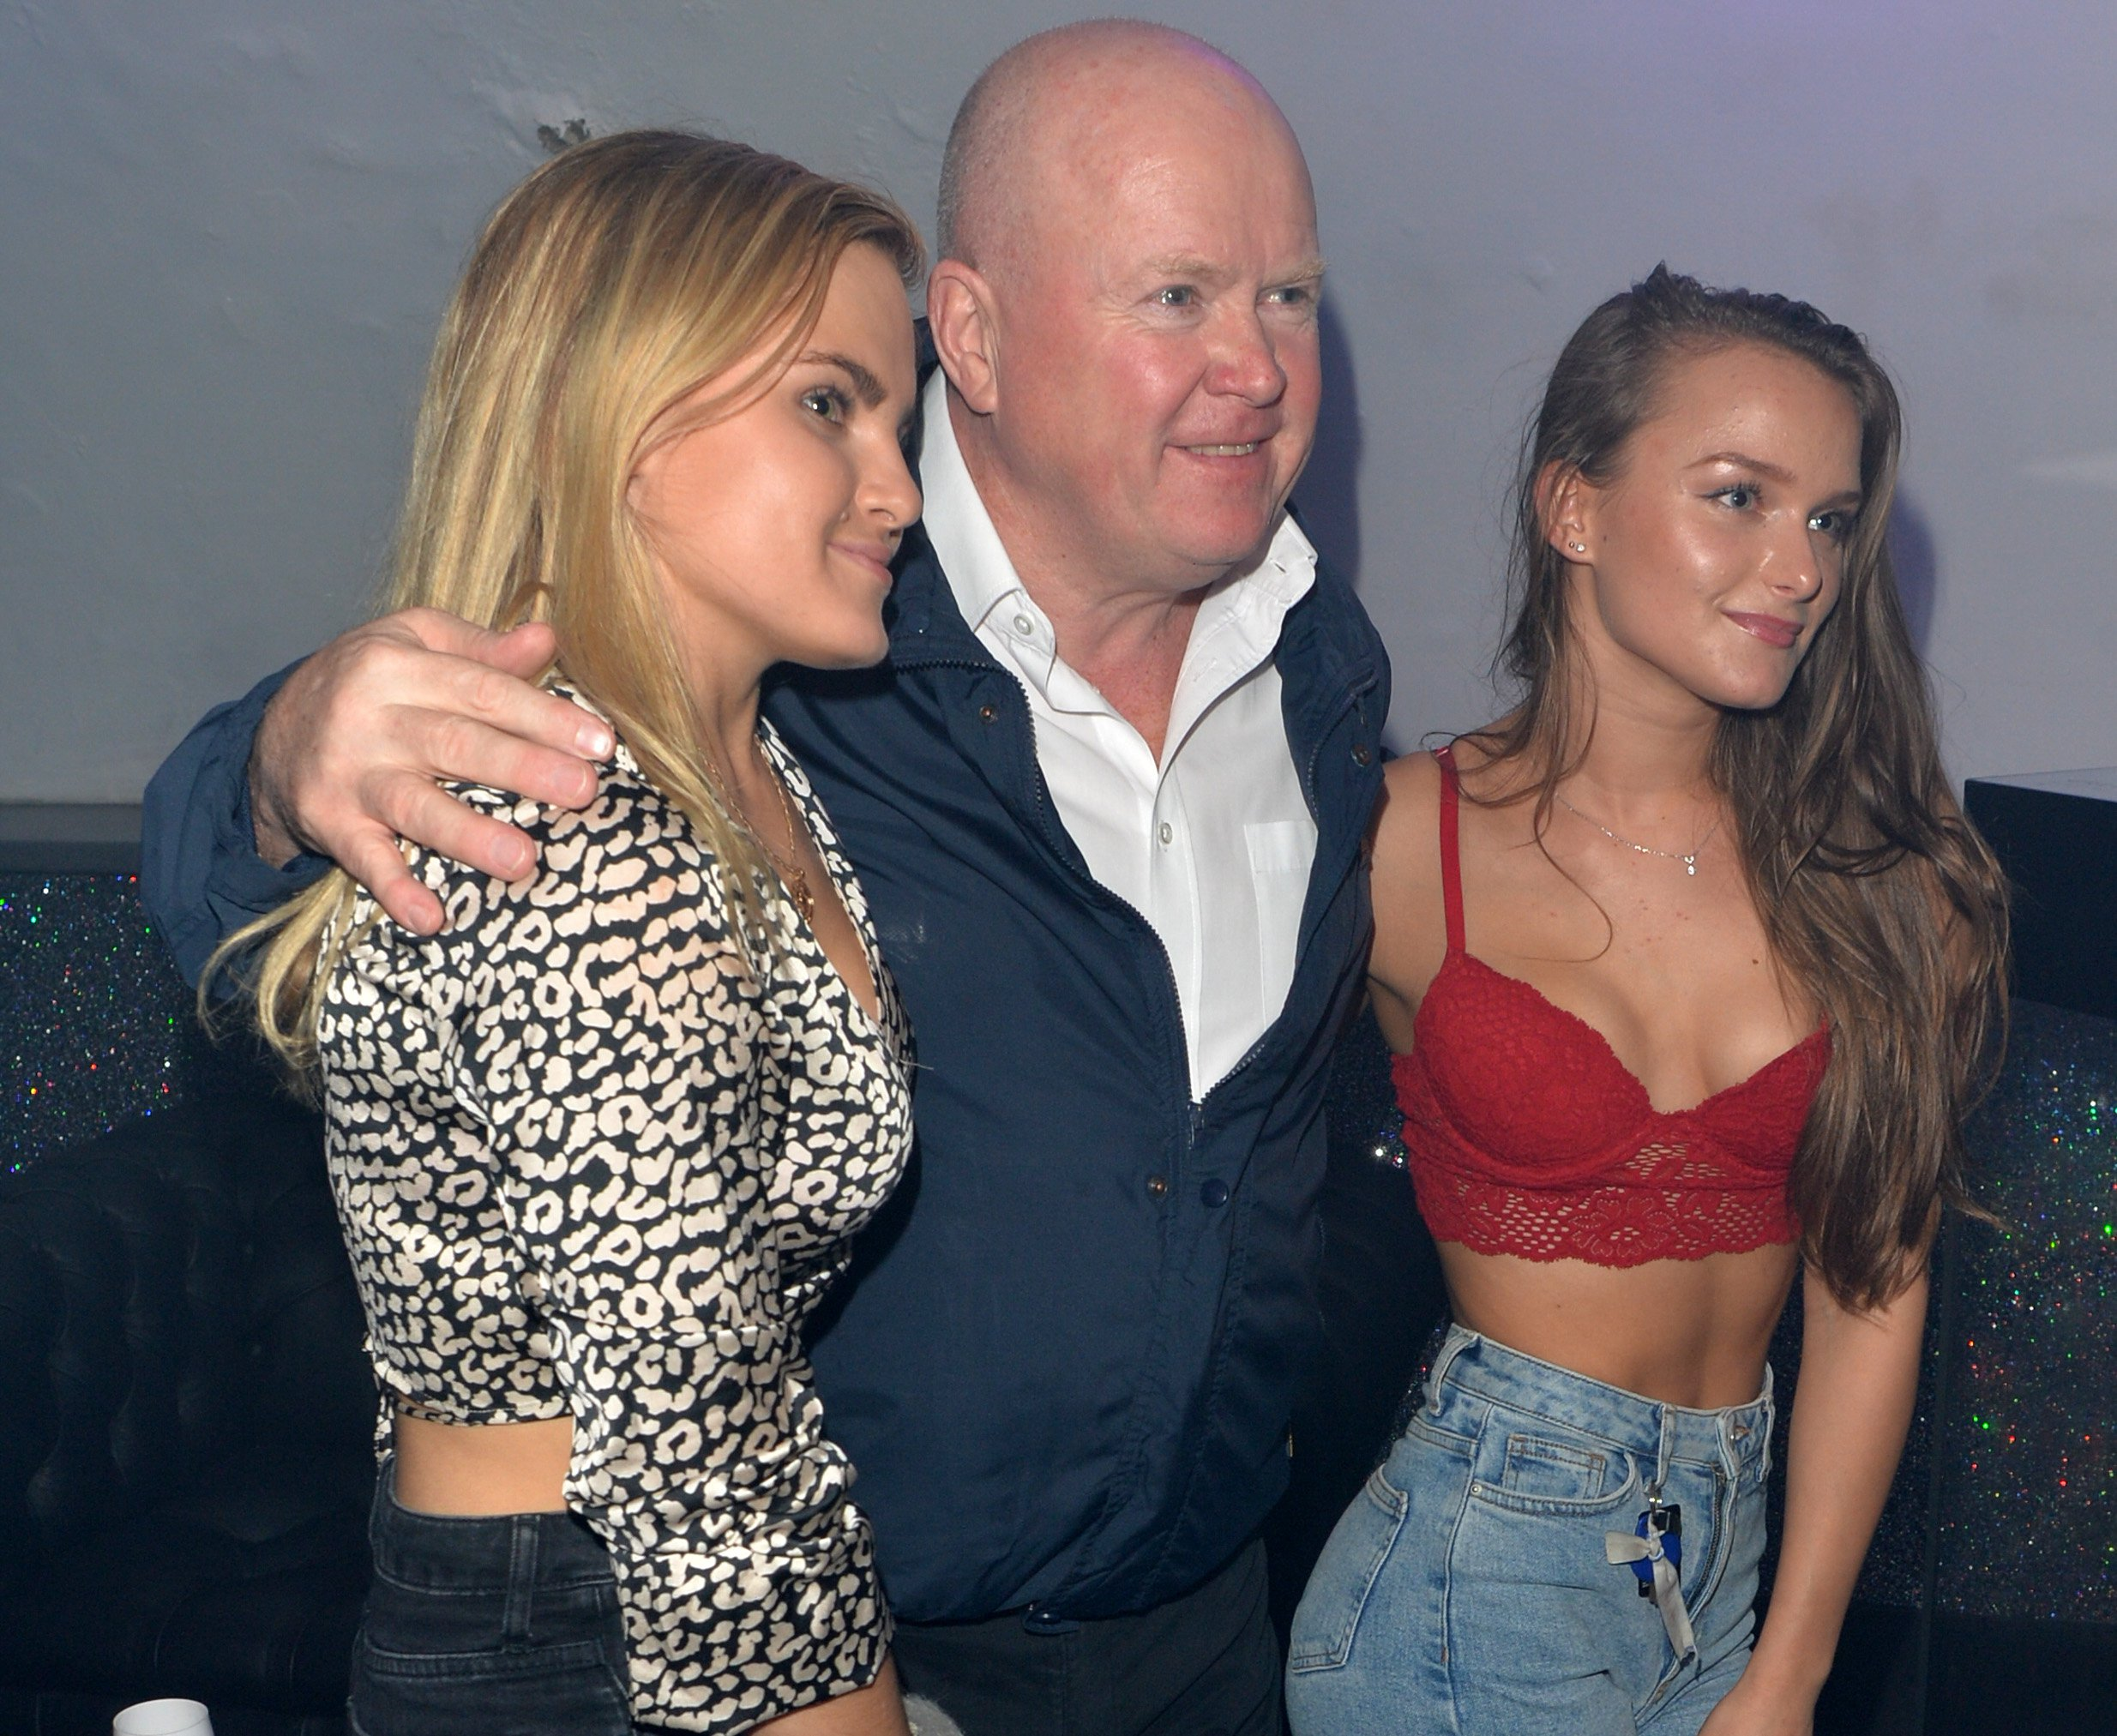 Eastenders star Steve McFadden aka Phil Mitchell is seen meeting fans at Brighton's Shoosh club for a personal appareance Pictured: Steve McFadden Ref: SPL5041347 121118 NON-EXCLUSIVE Picture by: PALACE LEE / SplashNews.com Splash News and Pictures Los Angeles: 310-821-2666 New York: 212-619-2666 London: 0207 644 7656 Milan: 02 4399 8577 photodesk@splashnews.com World Rights,